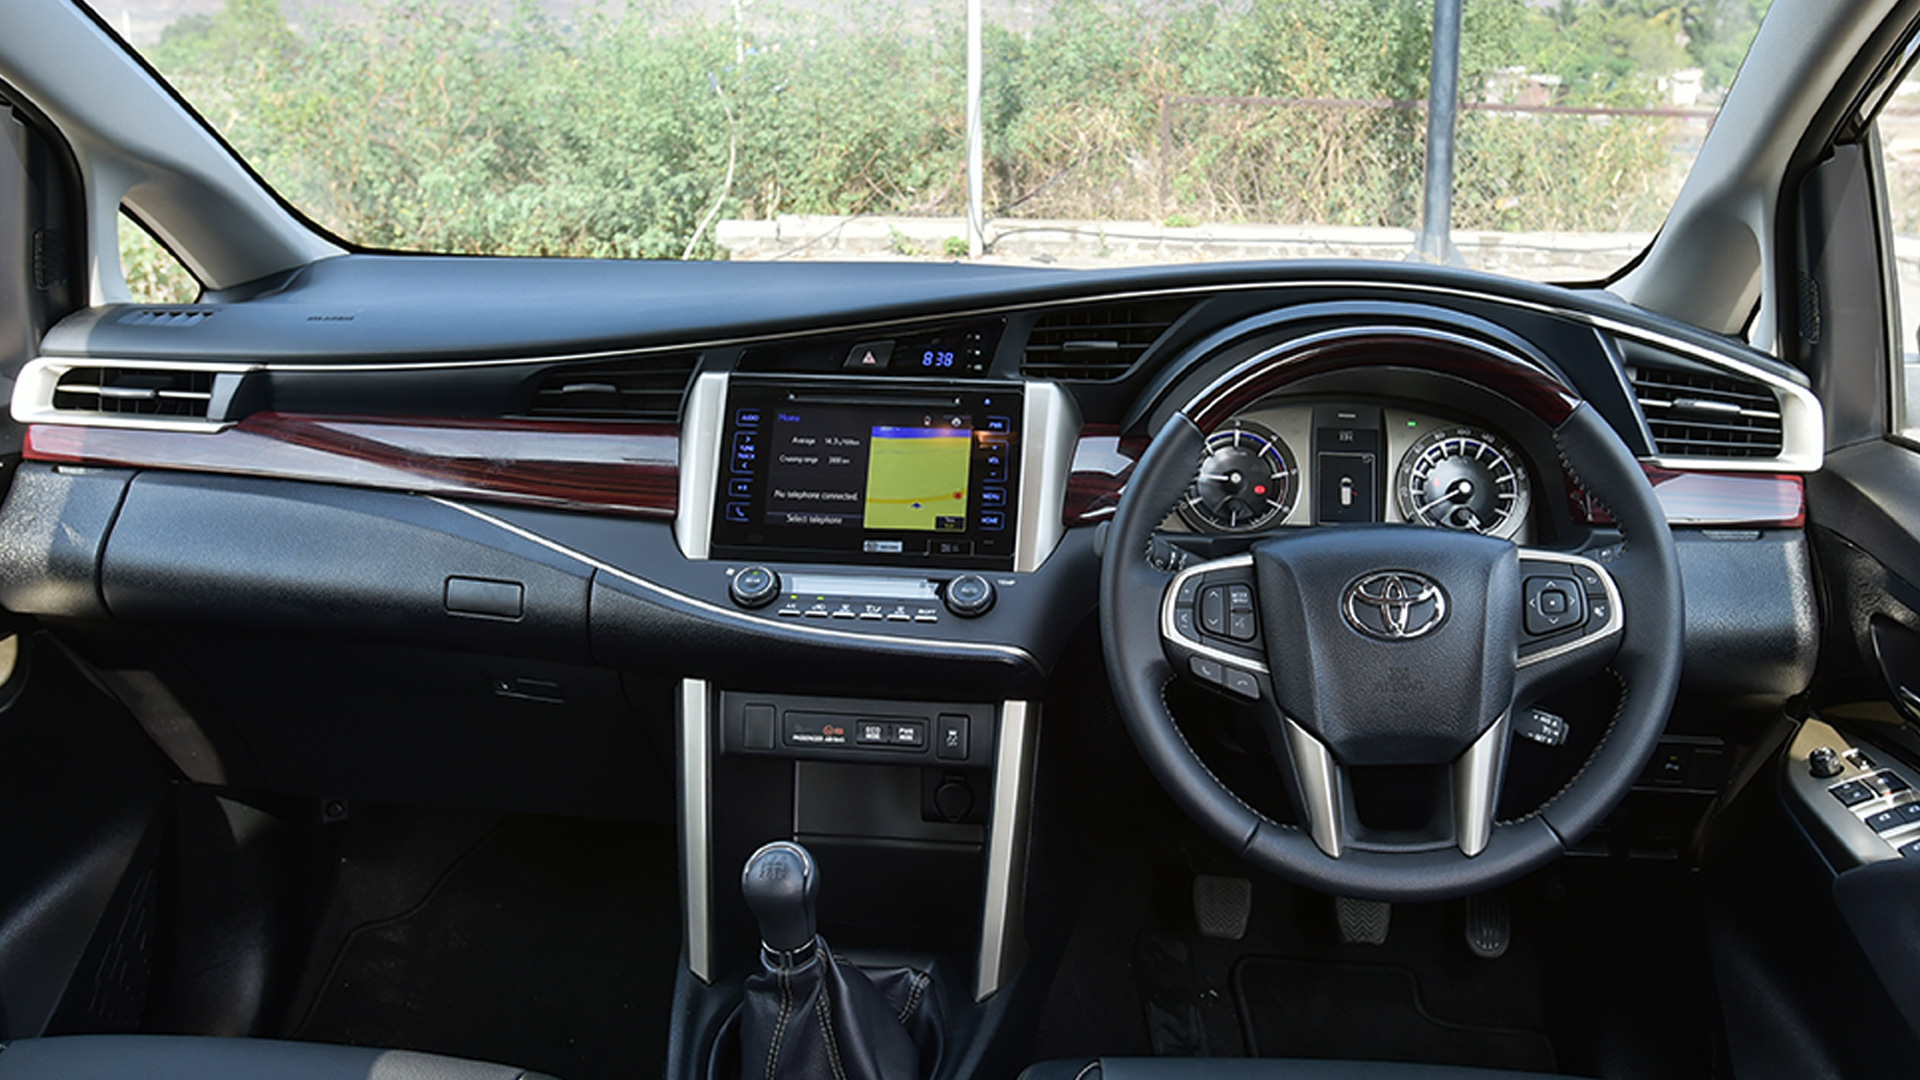 Toyota Innova Crysta 2016 STD Interior